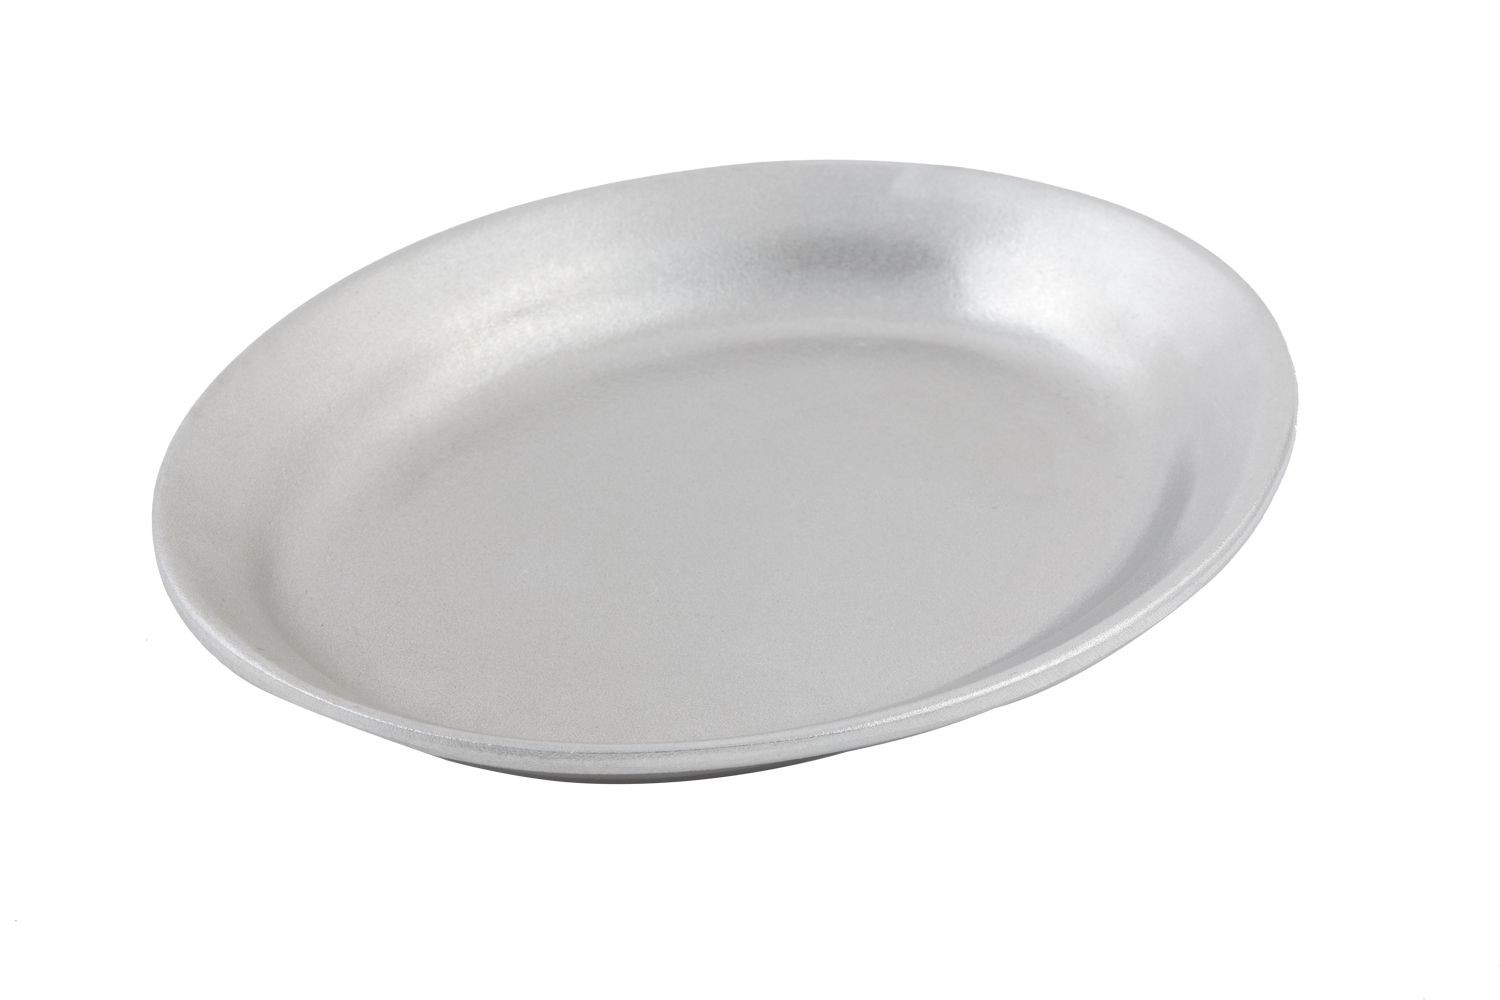 "Bon Chef 2033P Small Oval Platter, Pewter Glo 7 3/4"" x 9 3/4"", Set of 3"